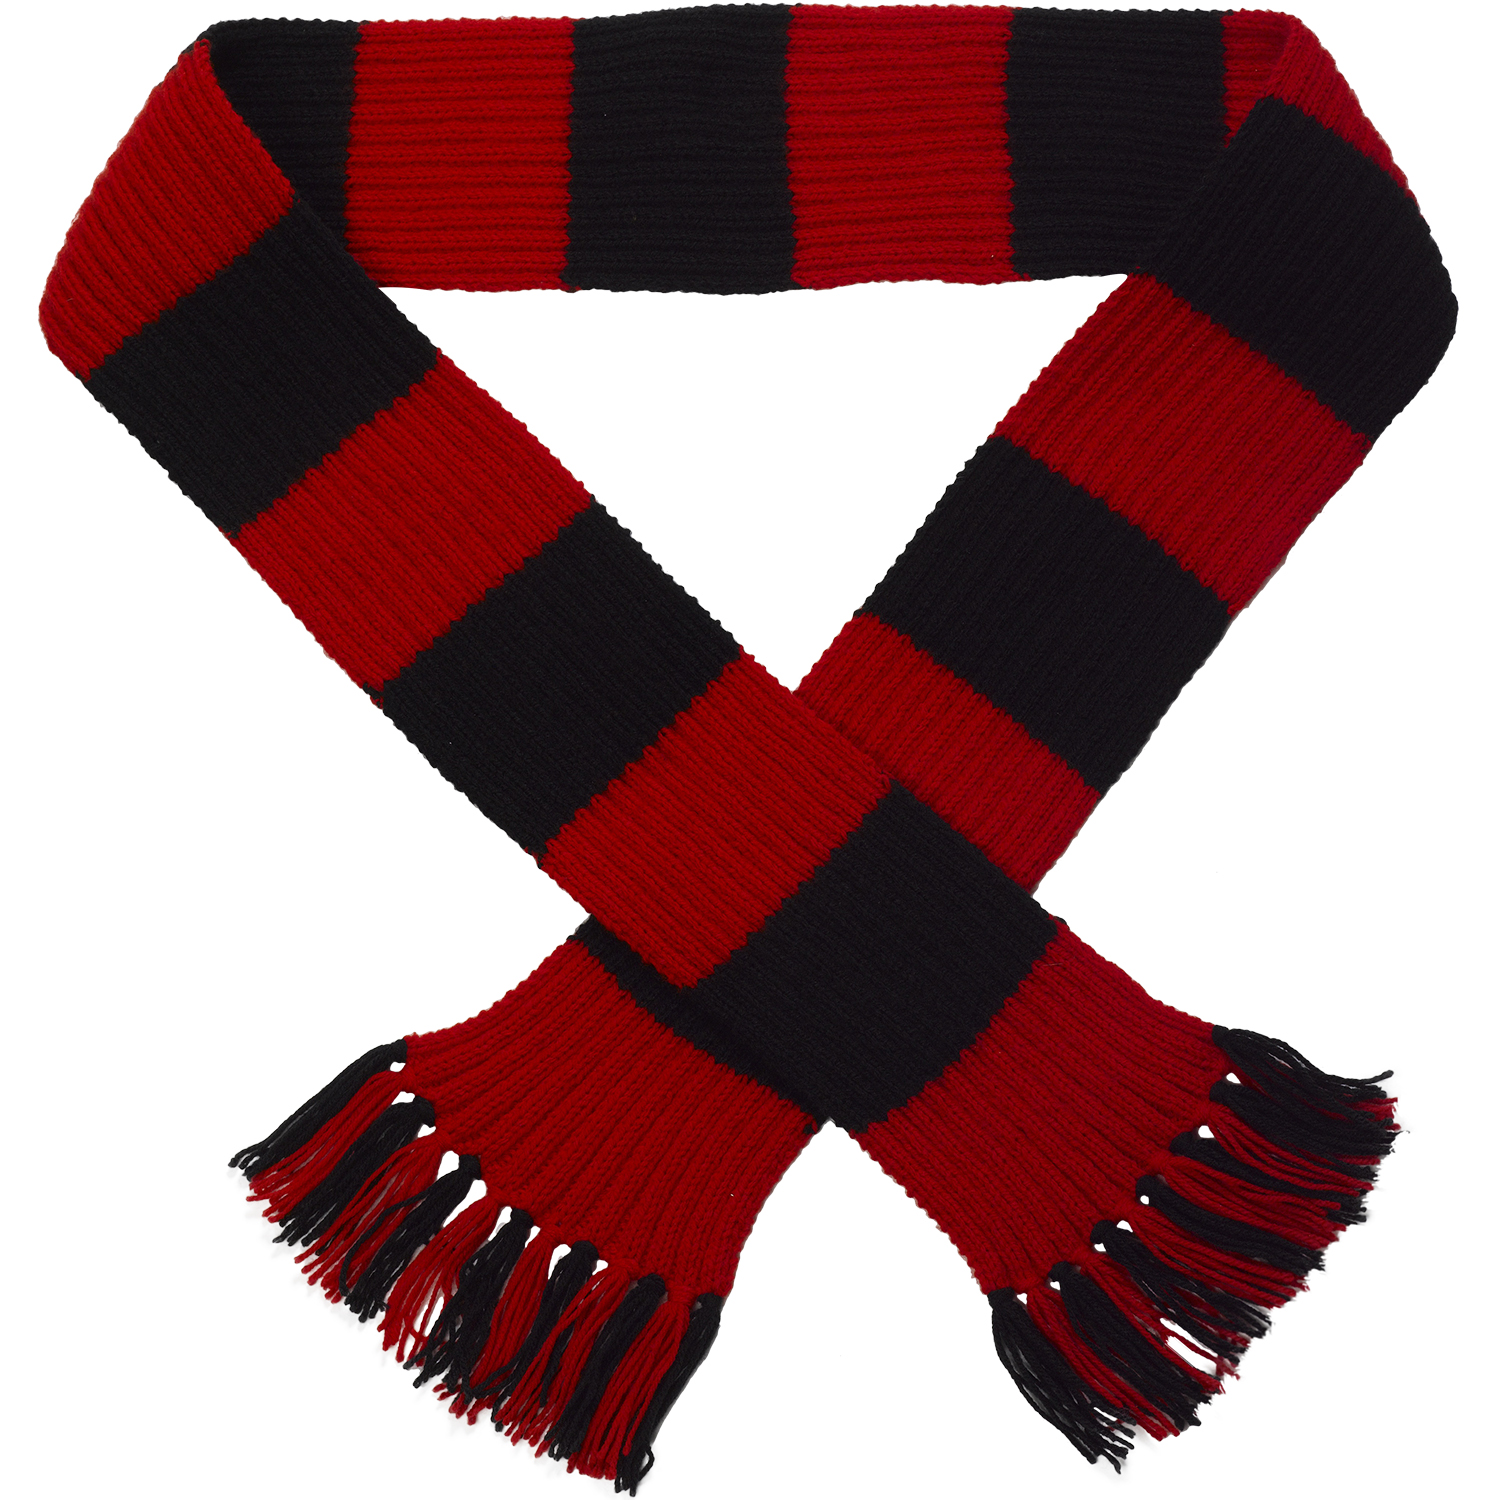 Two Colour Scarf Knitting Pattern : Craft Hobby Knitted Scarf Kit Football & Rugby DK Double Knitting Pattern...